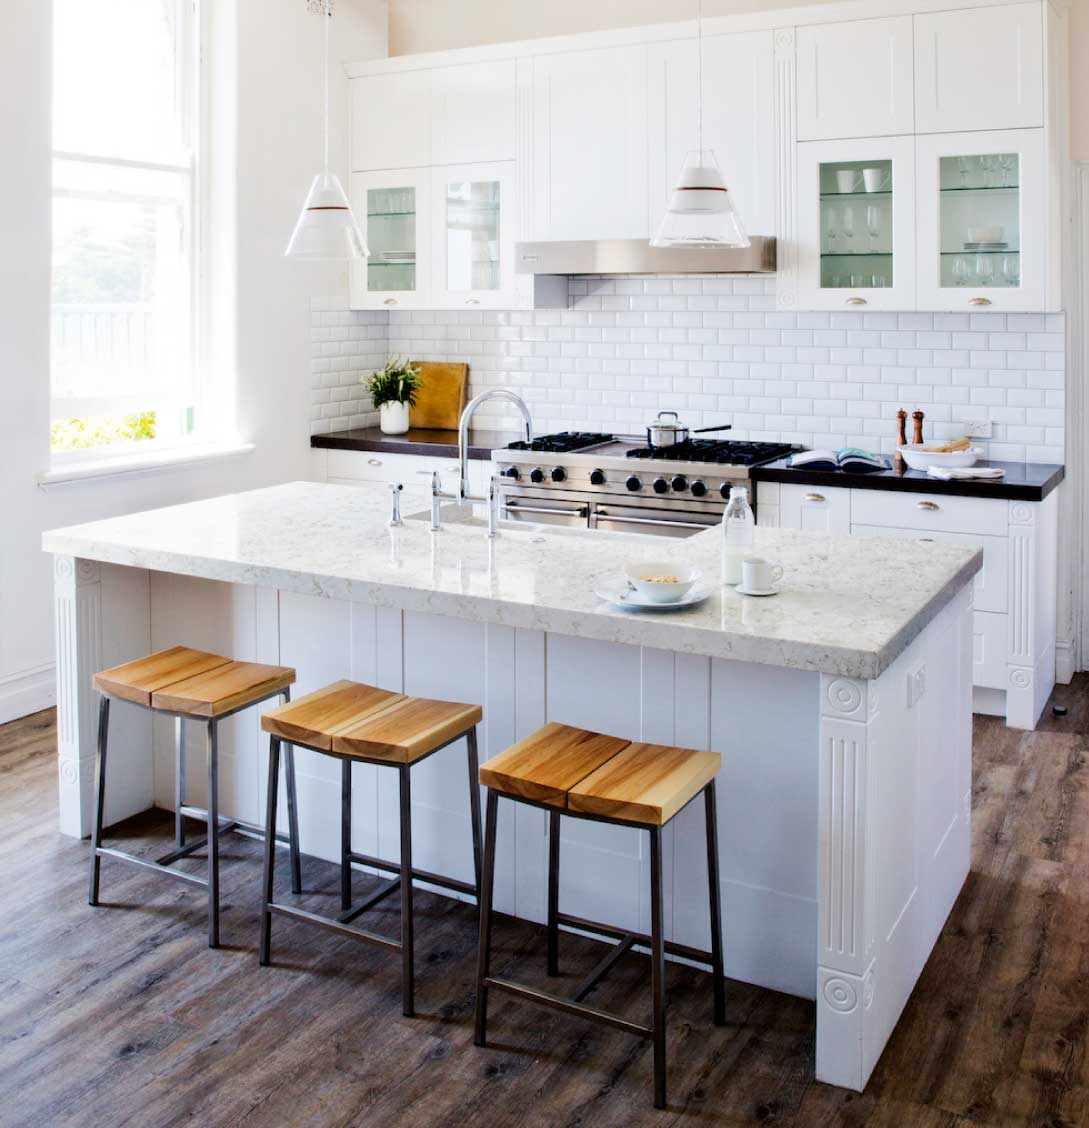 Silestone Lusso quartz countertop kitchen